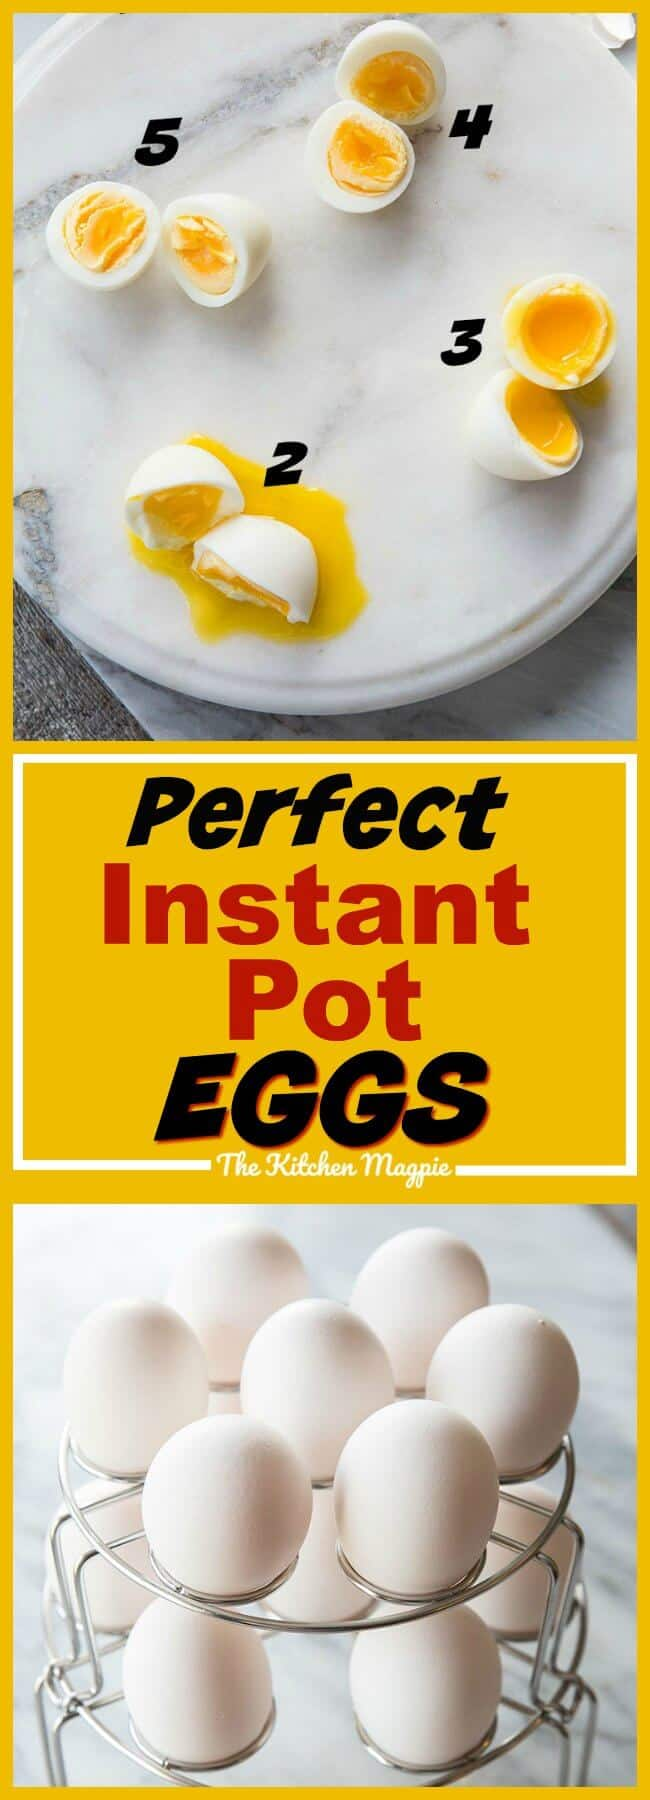 How to make your perfect egg in the Instant Pot, whether it's soft boiled, medium boiled or hard boiled! There's an egg for everyone! #instantpot #recipe #eggs #yolks #howto #pressurecooker #pressurecooking